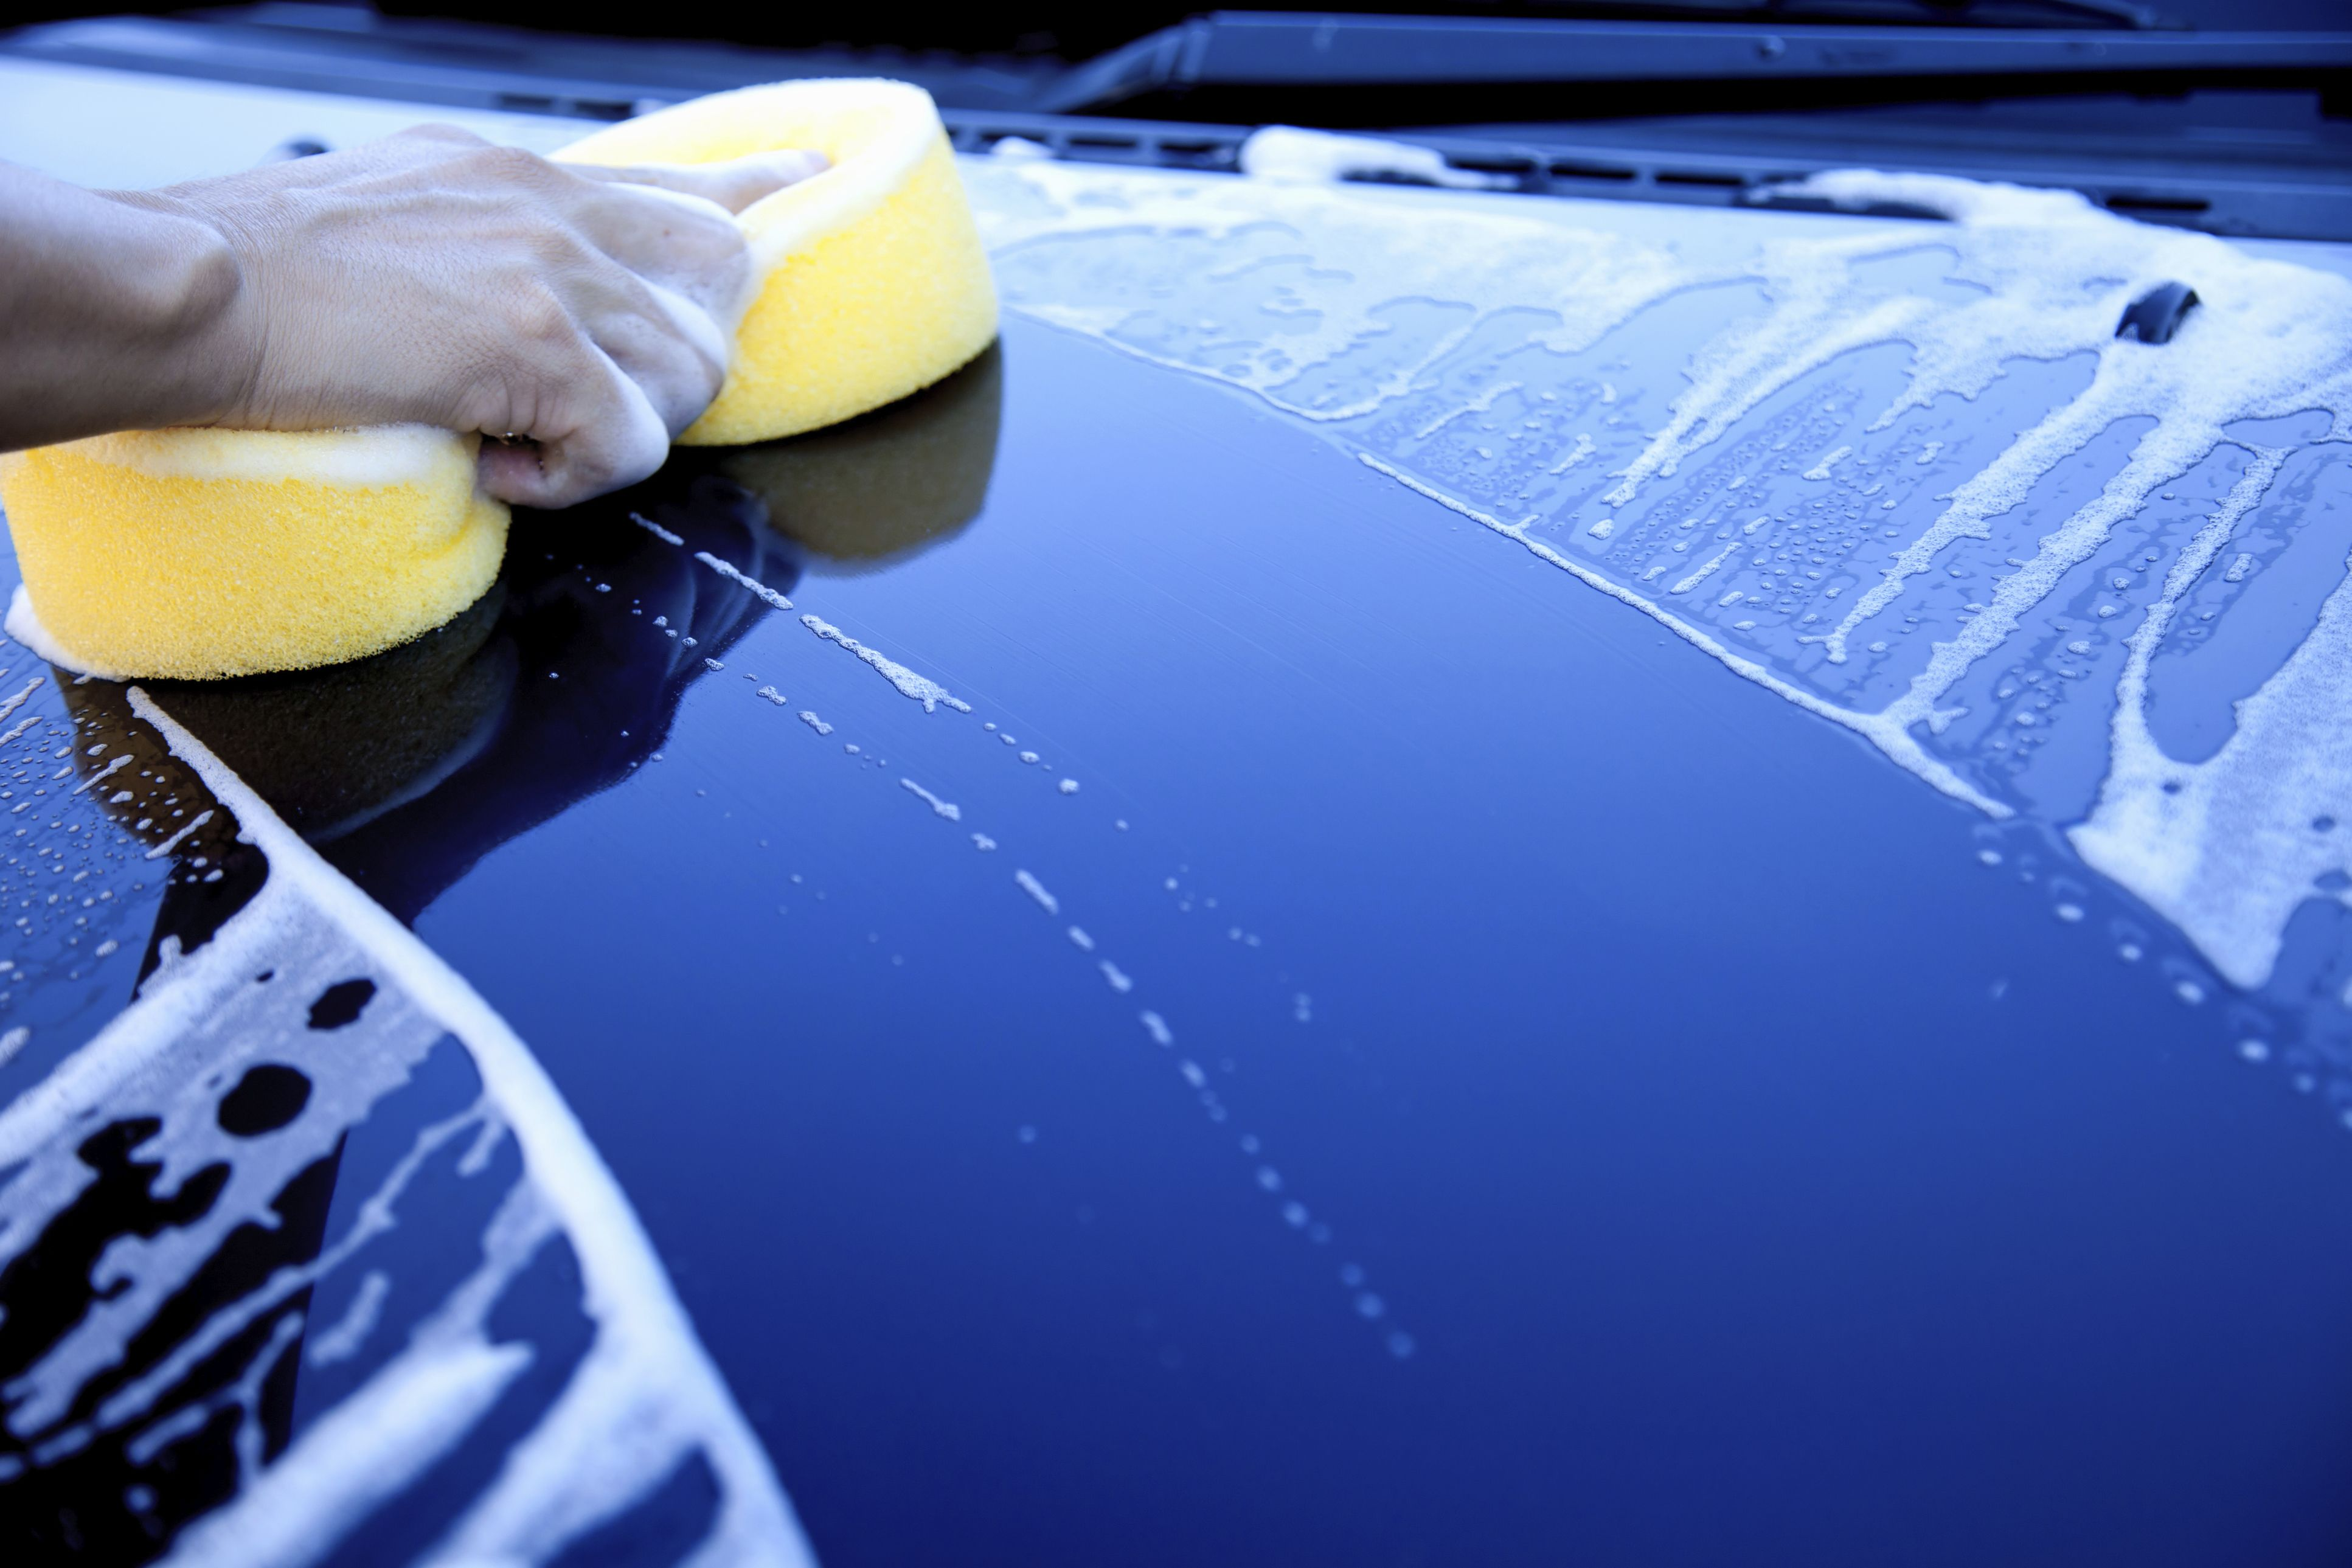 San bruno car wash open 24x7 to make your car neat and clean http before you take you car to a local car wash service consider saving some money and washing your car yourself solutioingenieria Images